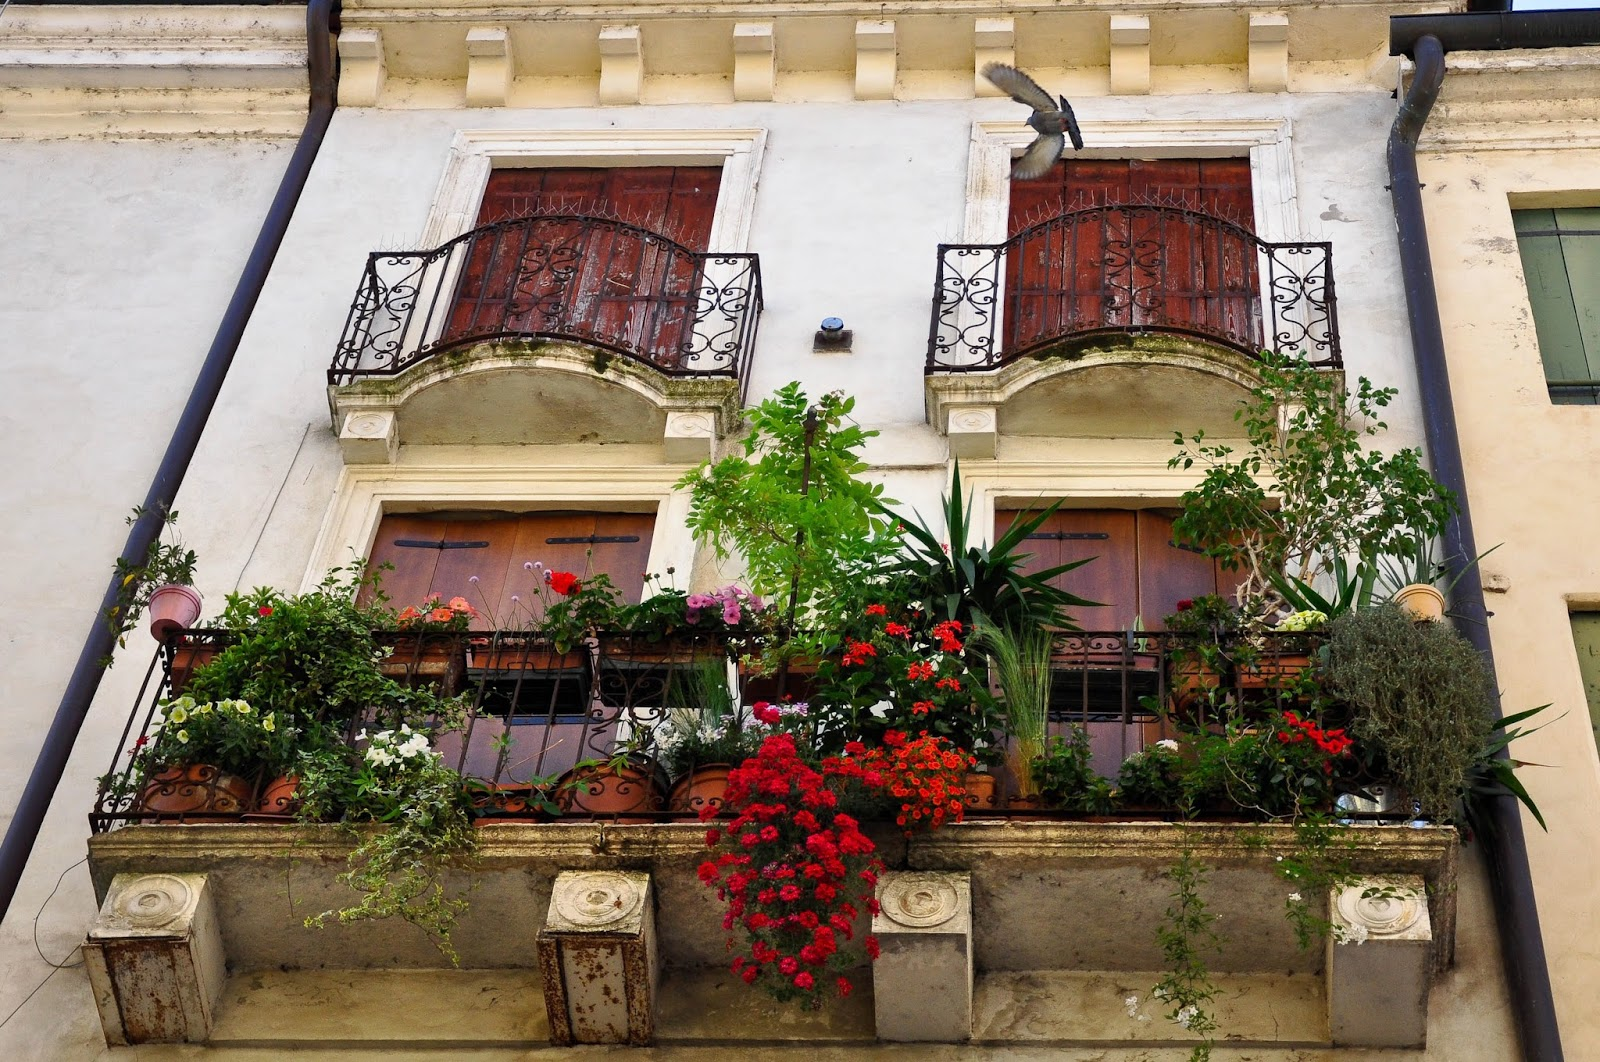 A hanging garden on a balcony with a flying pigeon in Vicenza, Italy